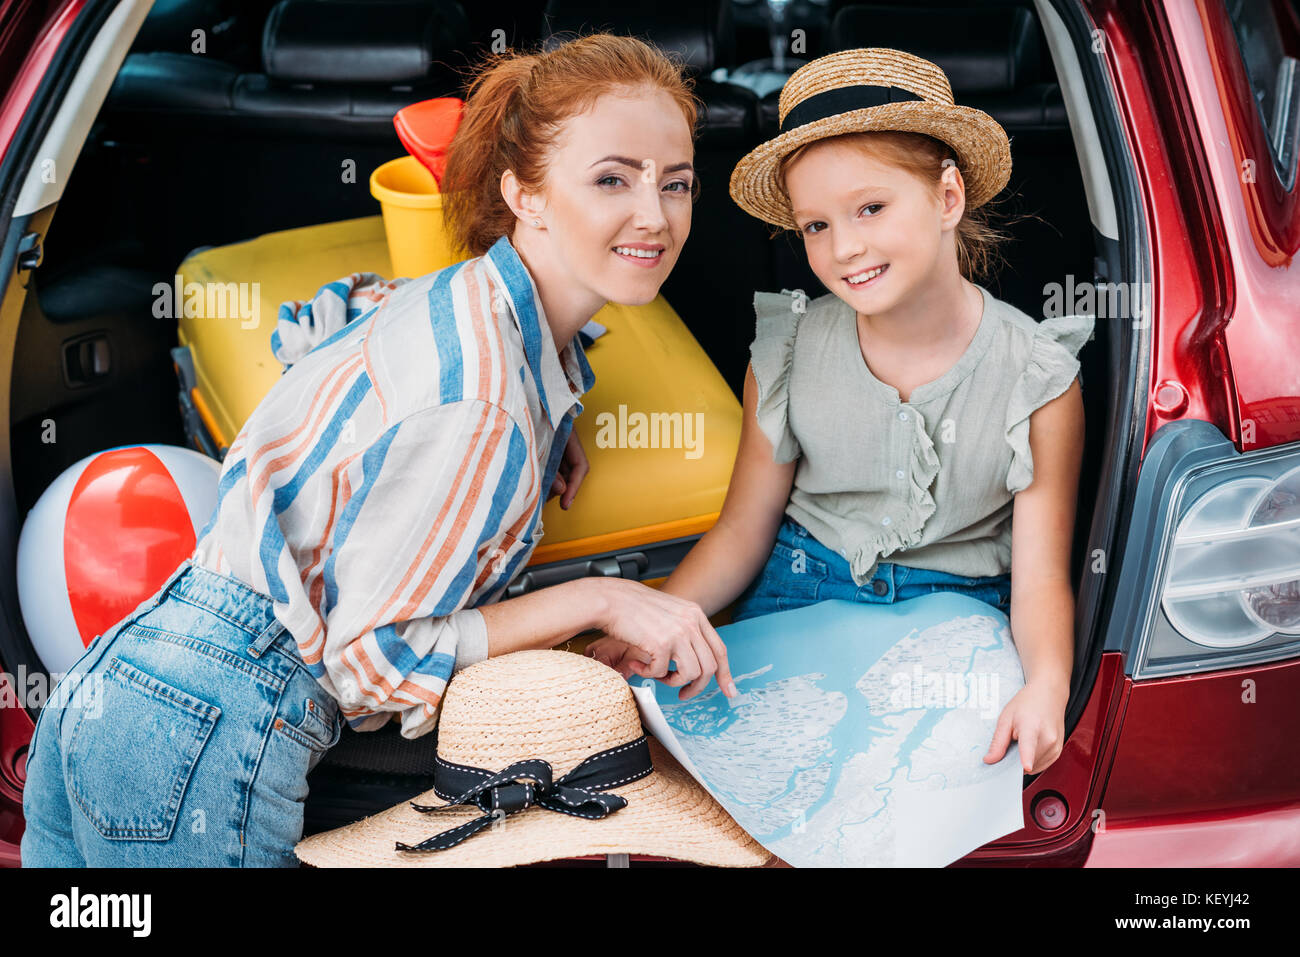 mother and daughter in car trunk - Stock Image